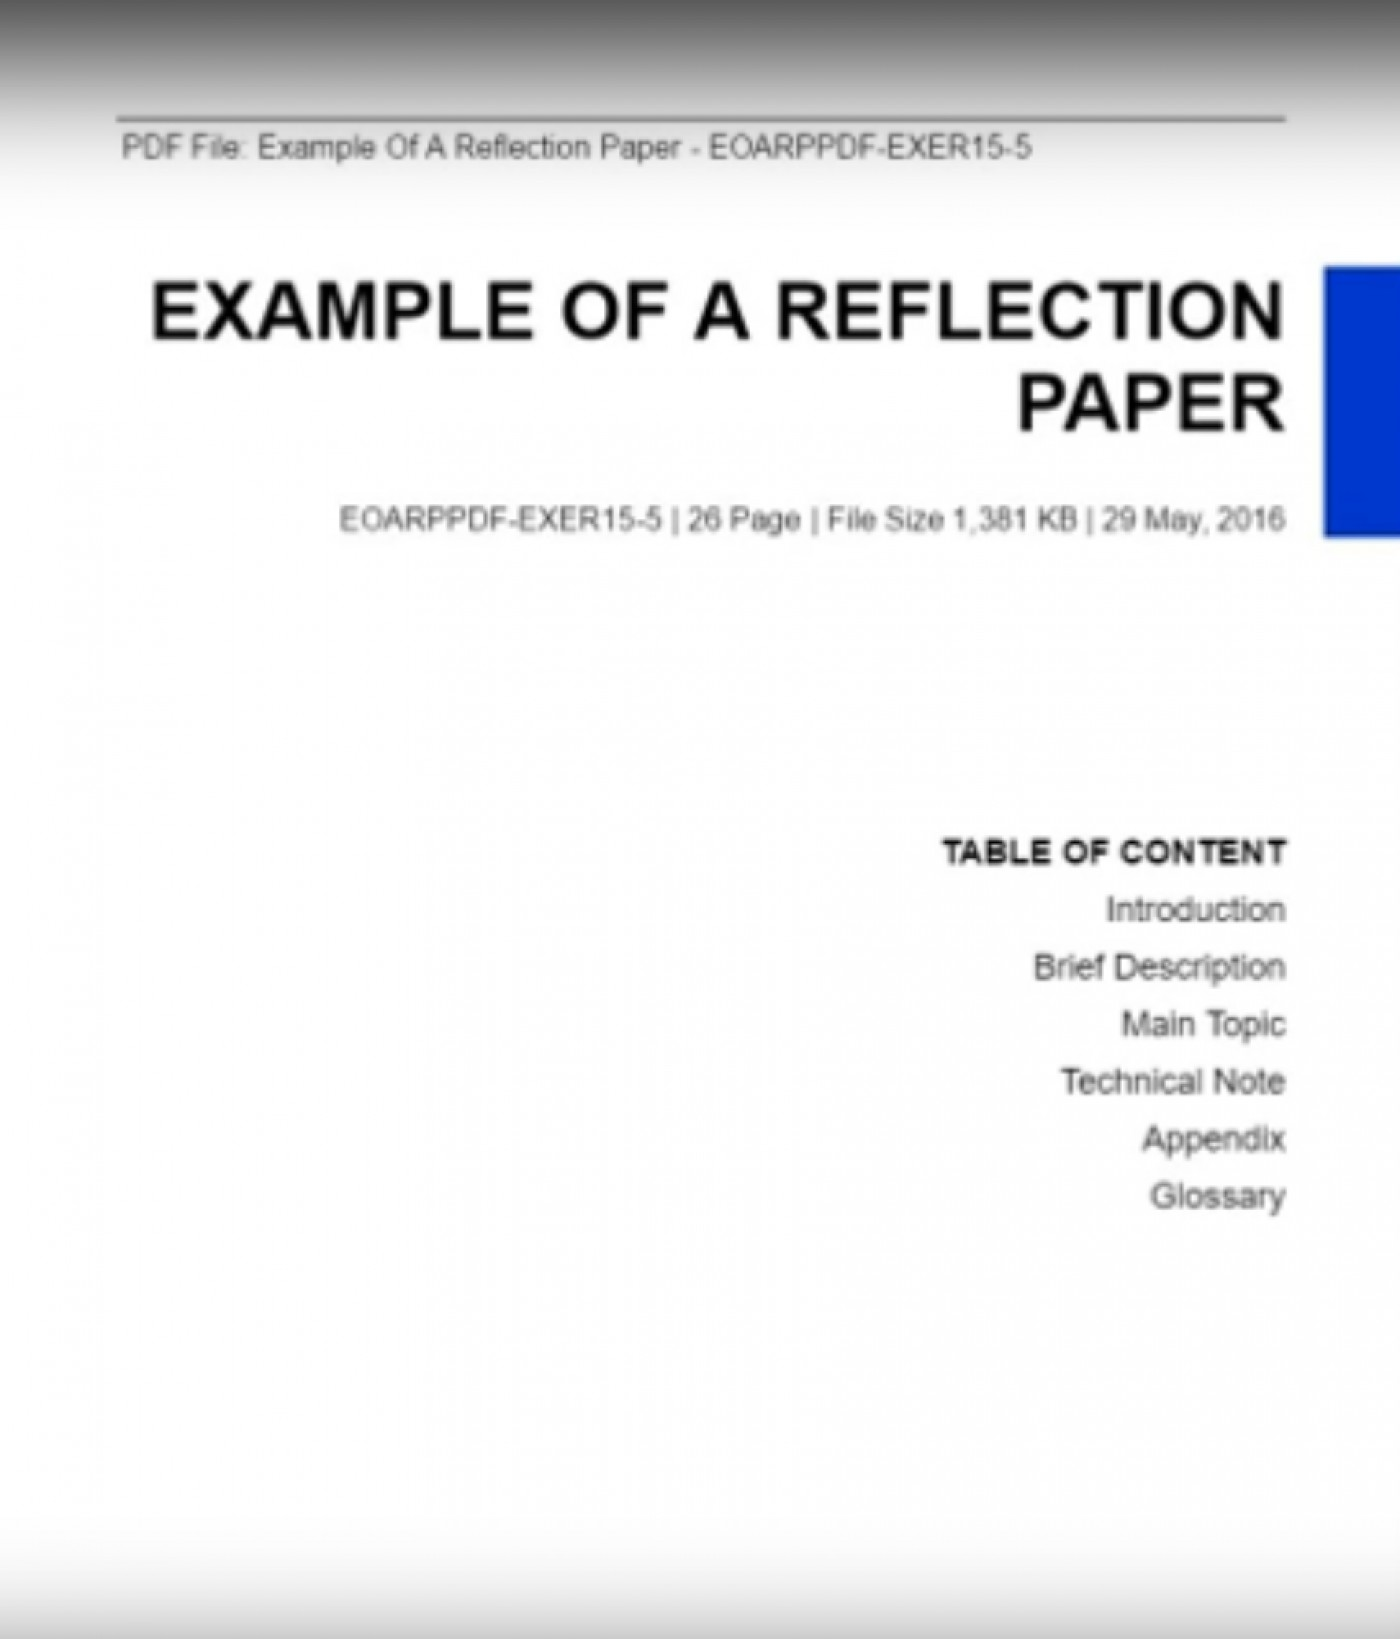 013 Reflective Essay Example Reflection Paper Unforgettable Examples About Life Pdf High School Students Apa 1400